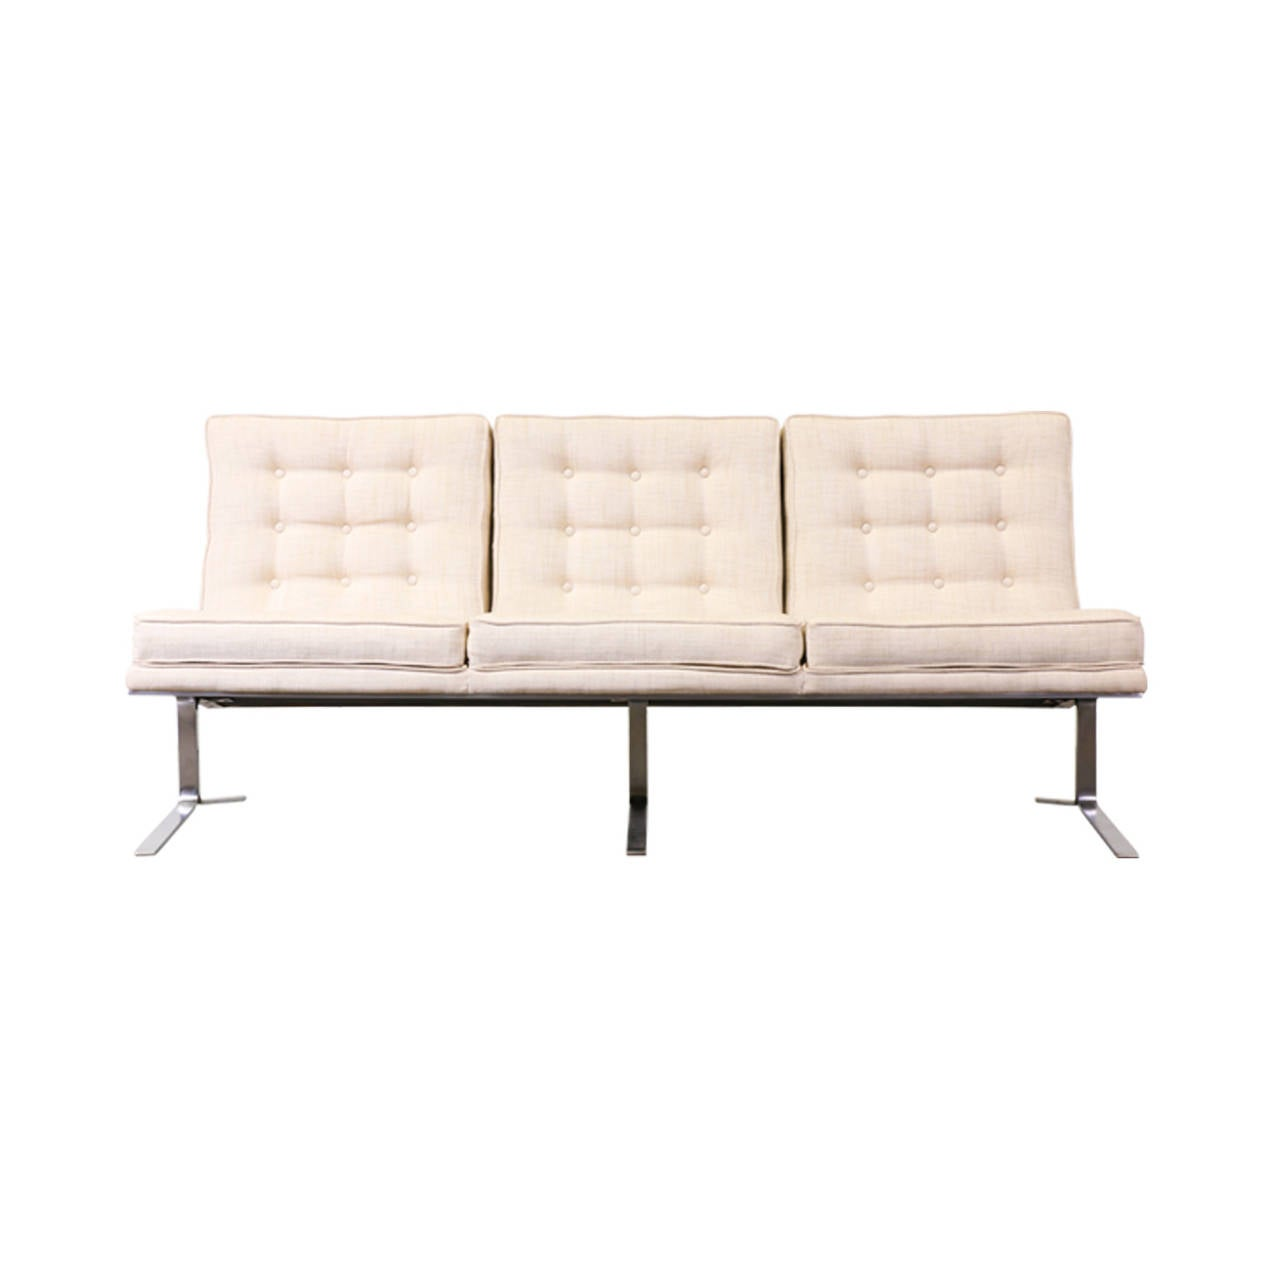 sofa with legs or without leather pet cover florence knoll style tufted w steel at 1stdibs